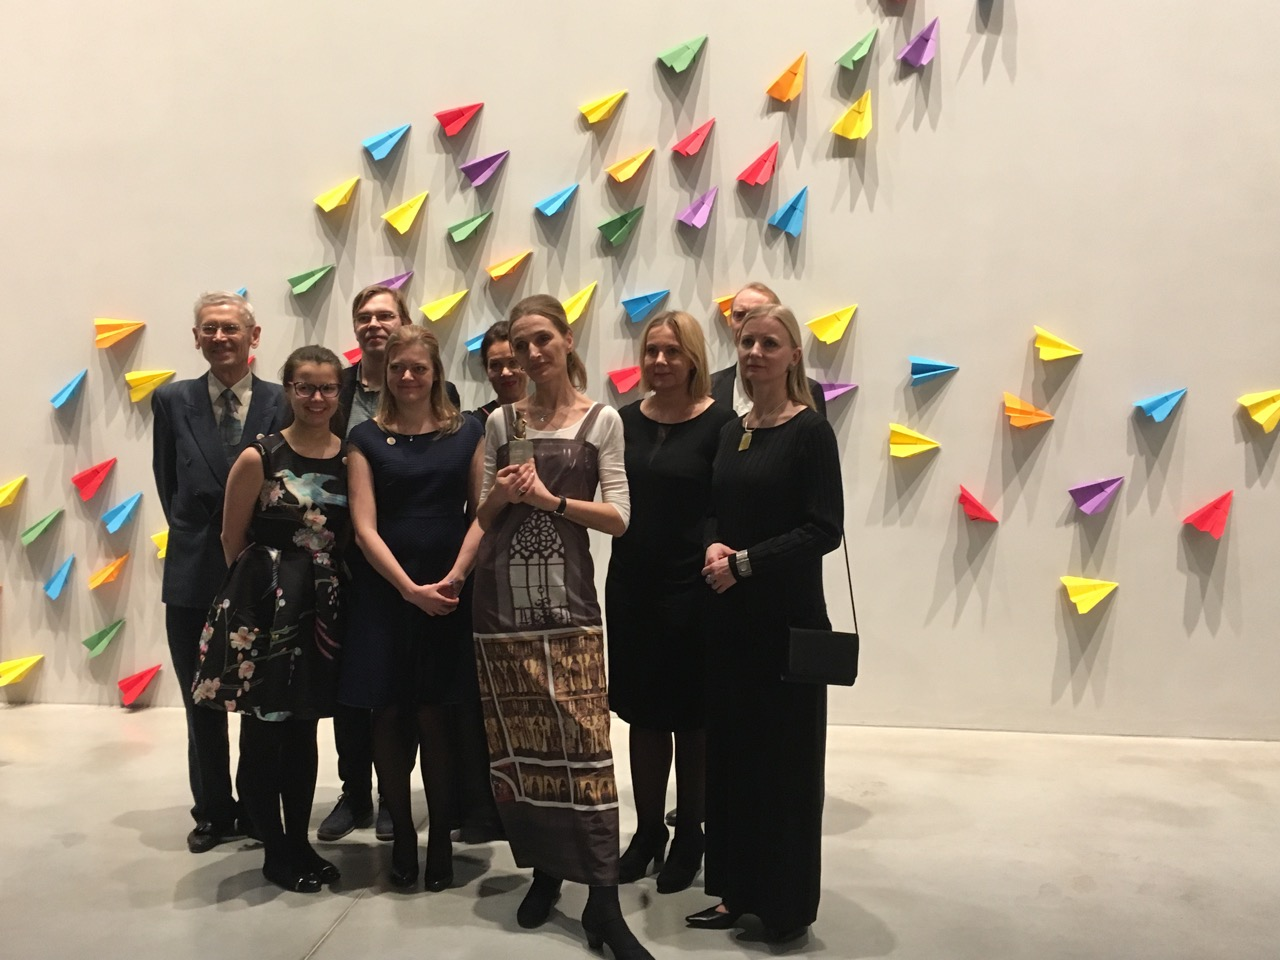 Representatives of the project participants – Art Museum of Estonia, Estonian Academy of Arts, University of Tartu and Estonian Environmental Research Centre – together with the Museum Rat award